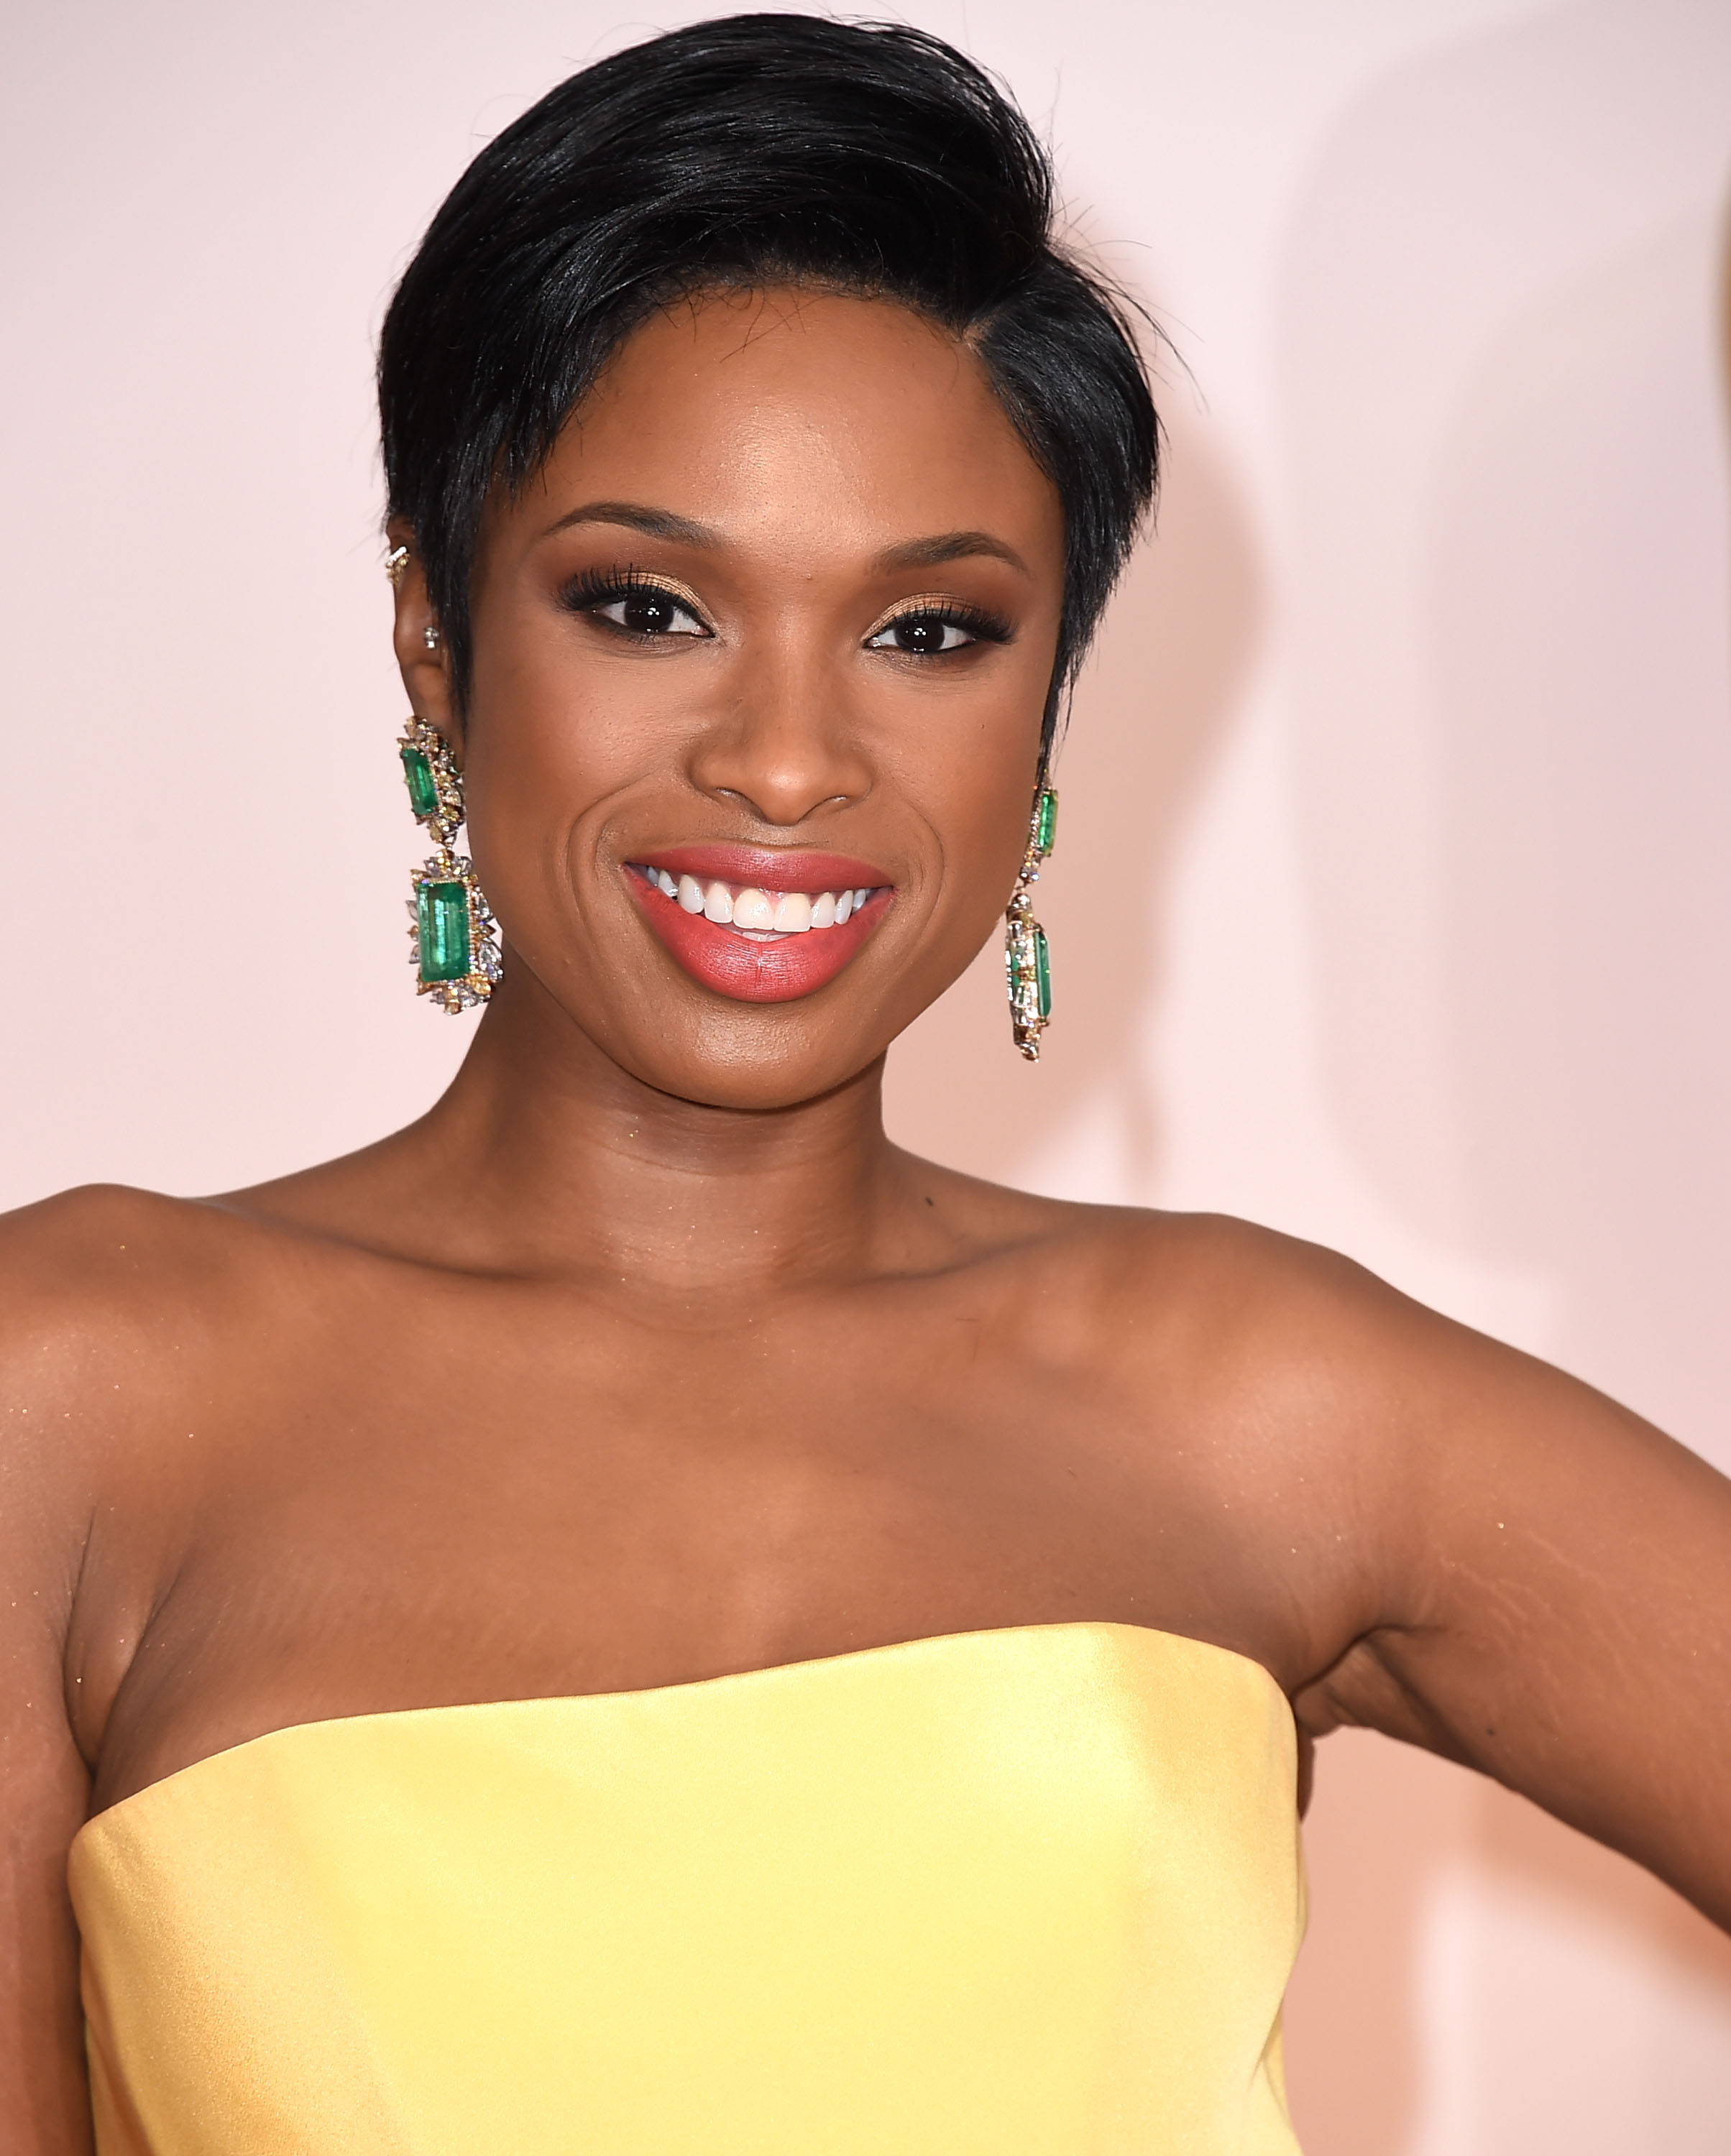 Stupendous 45 Black Hairstyles For Short Hair Short Haircuts For Black Women Hairstyles For Women Draintrainus